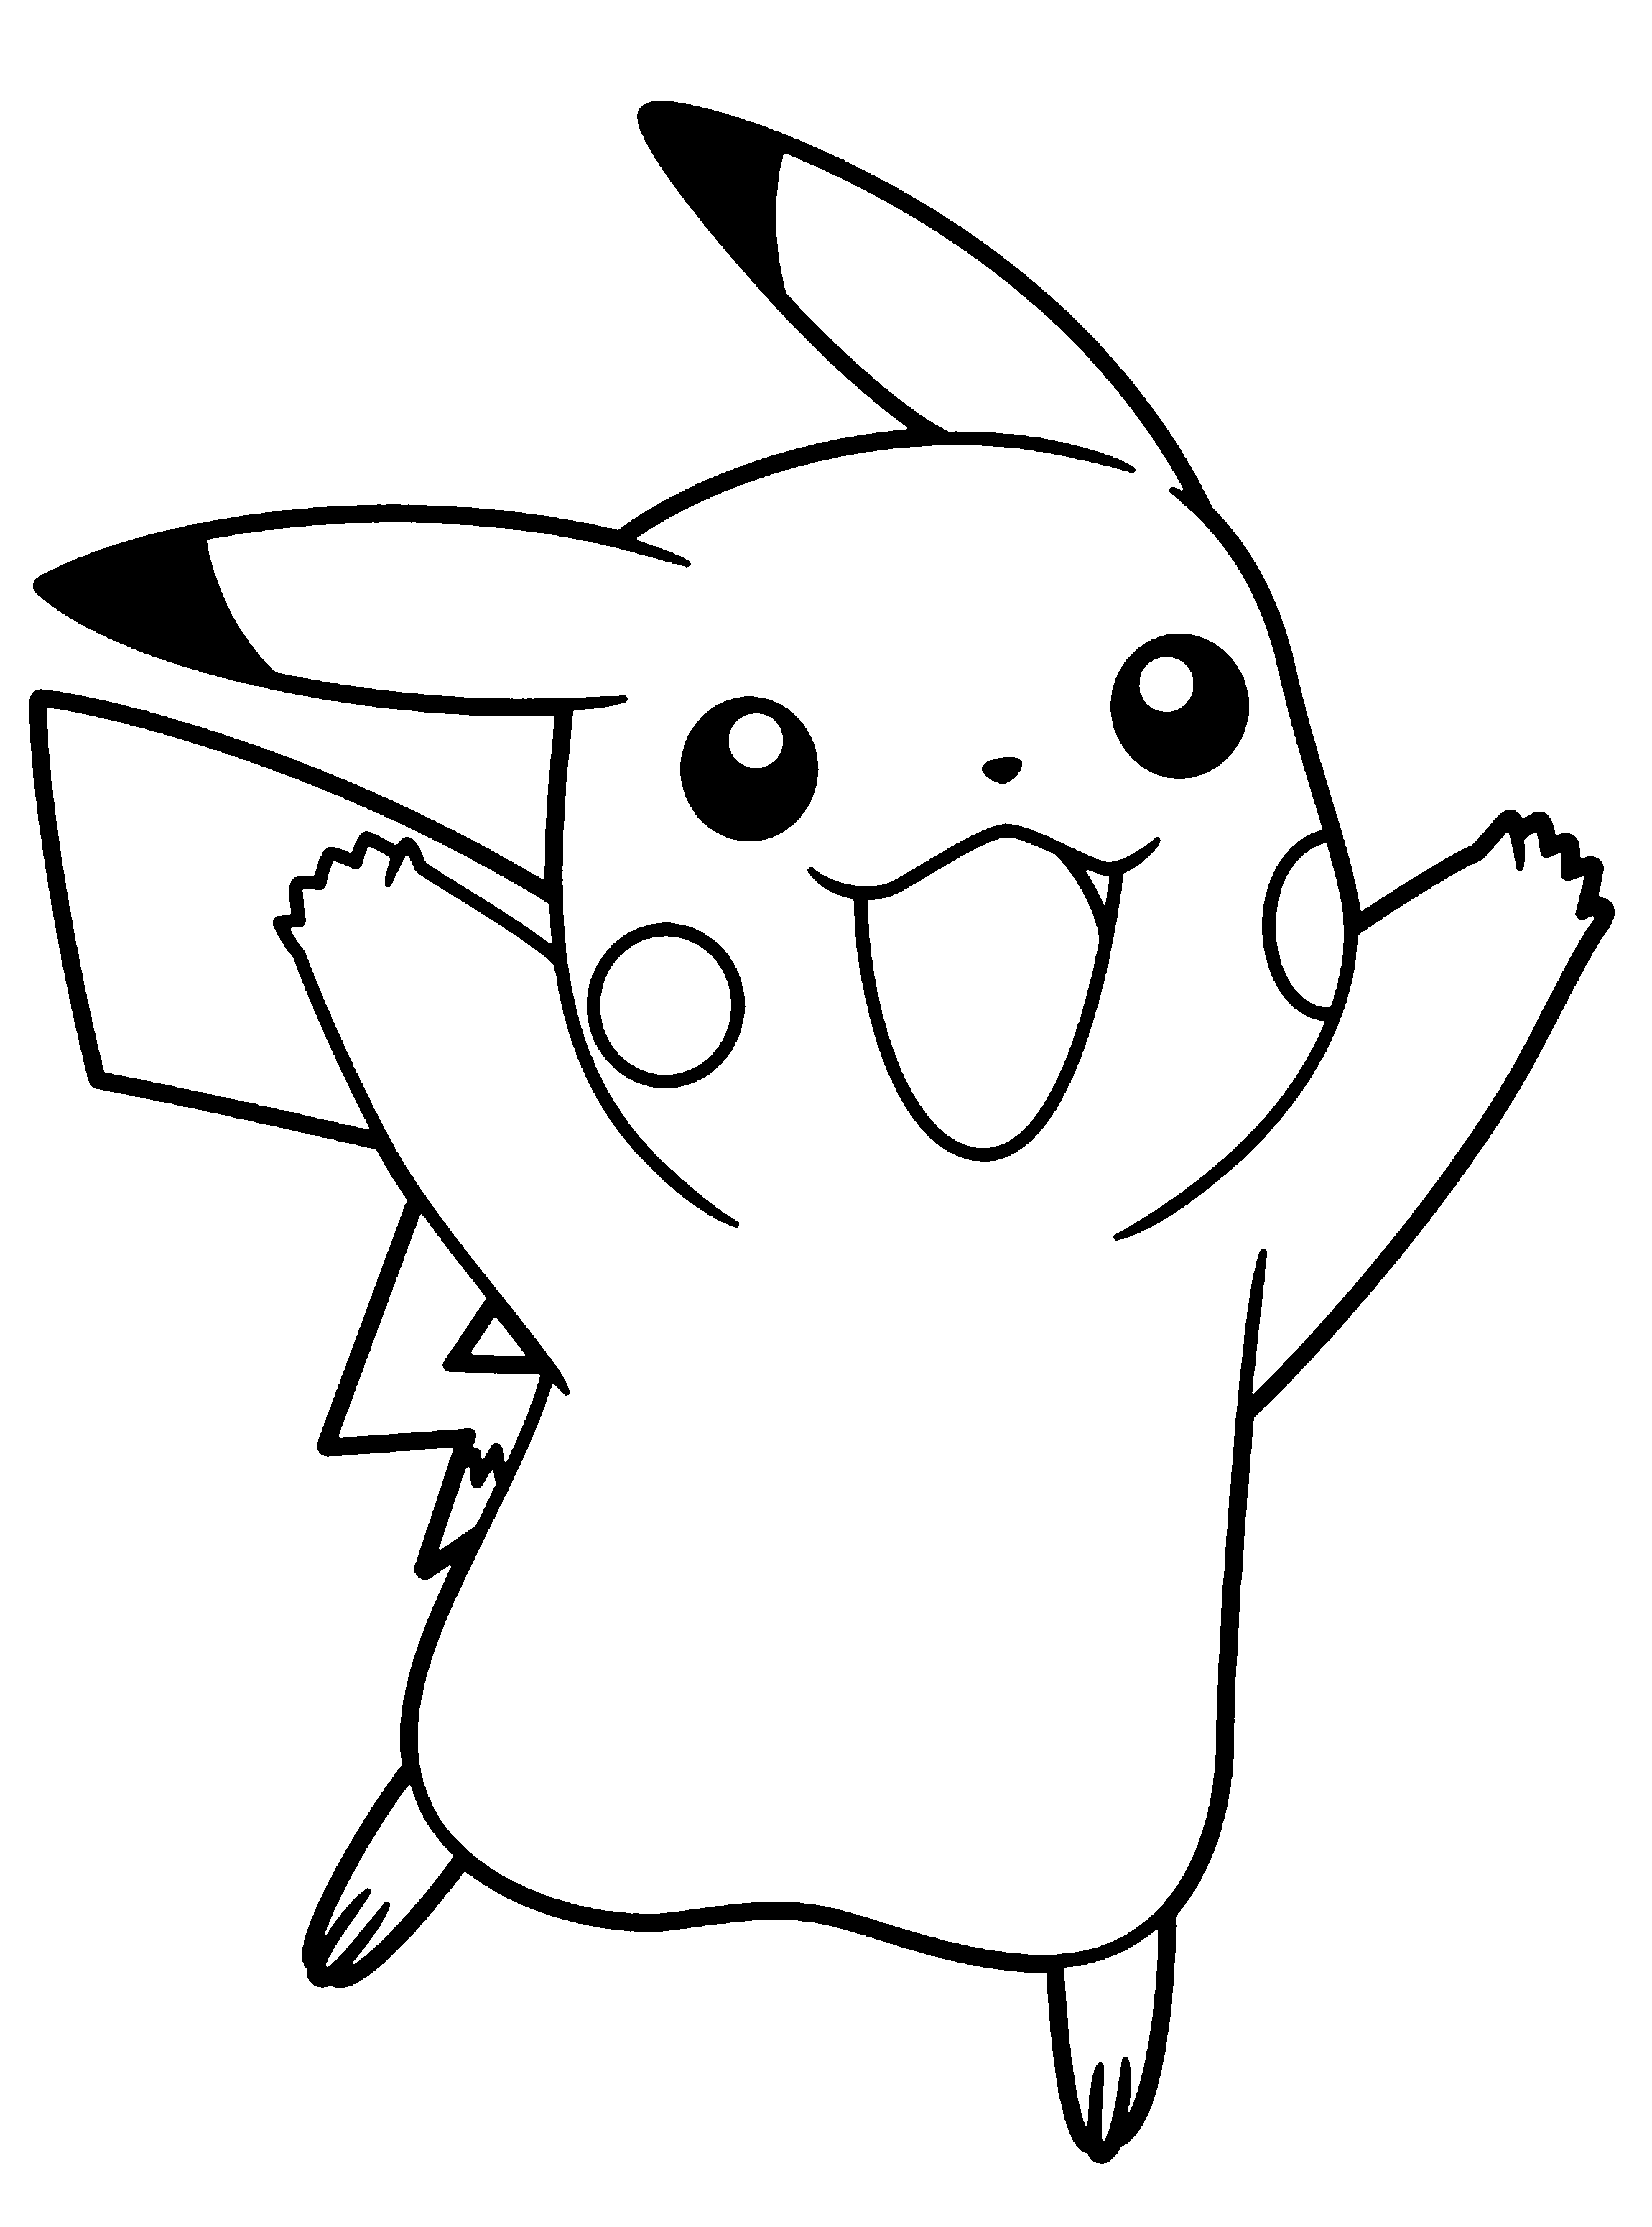 pikachu in action coloring pages - photo#13